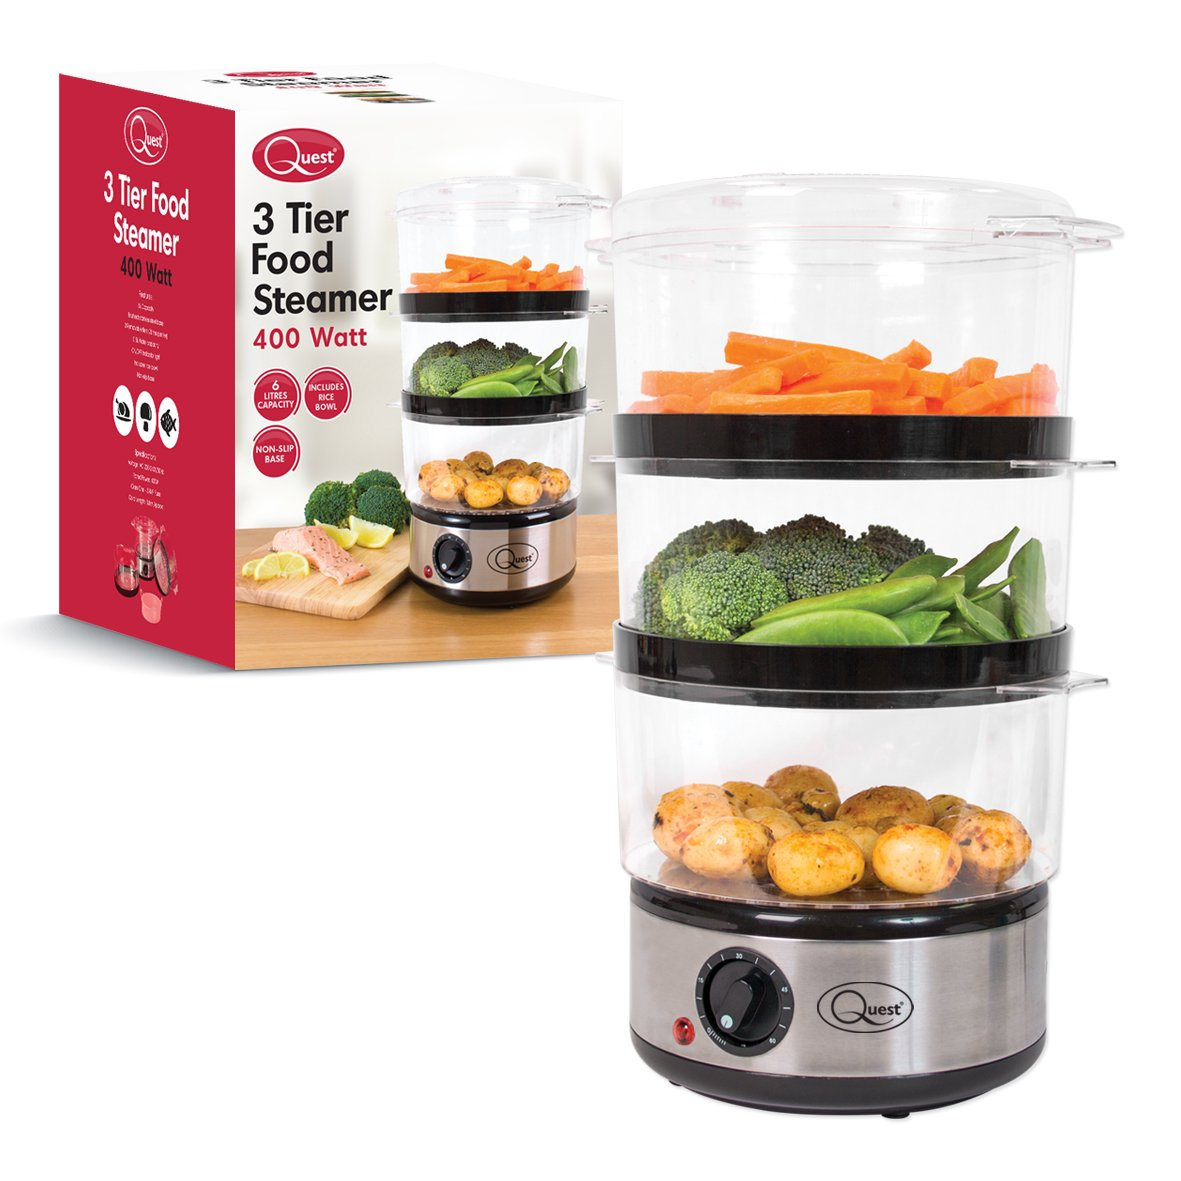 Quest BNR35220 3 Tier Steamer 7.2Litre 400W Compact Food Steamer with Rice Bowl  26.5cm x 21cm Silver